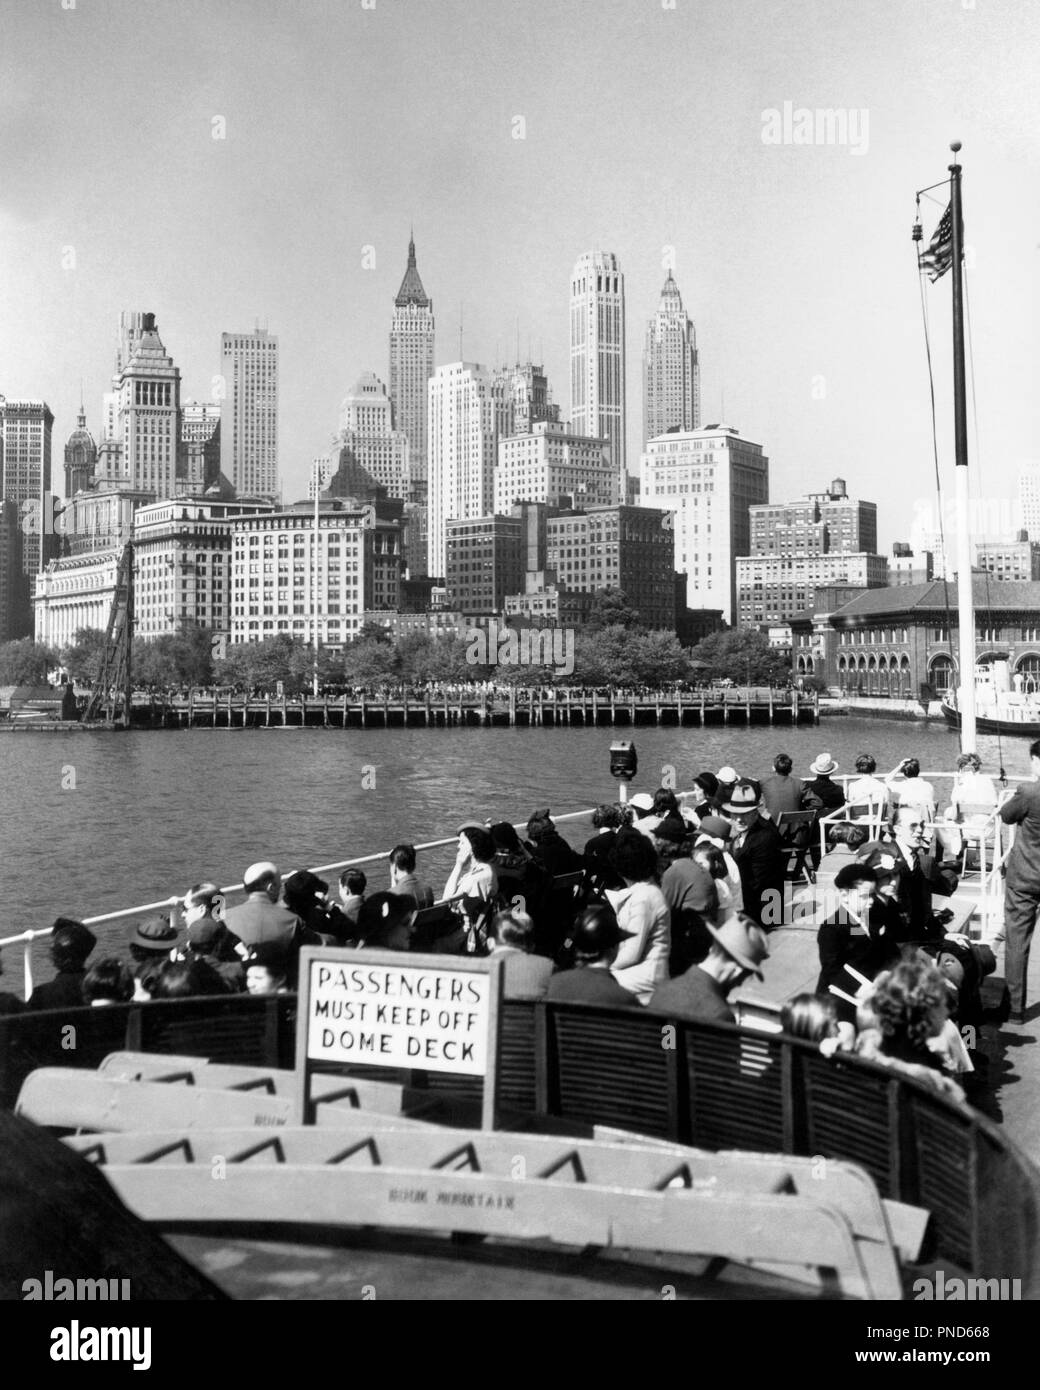 1930s 1940s New York City Downtown Skyline From The Statue Of Liberty Boat Upper Deck Nyc Usa R1149 Har001 Hars Har001 Hudson River Old Fashioned Stock Photo Alamy